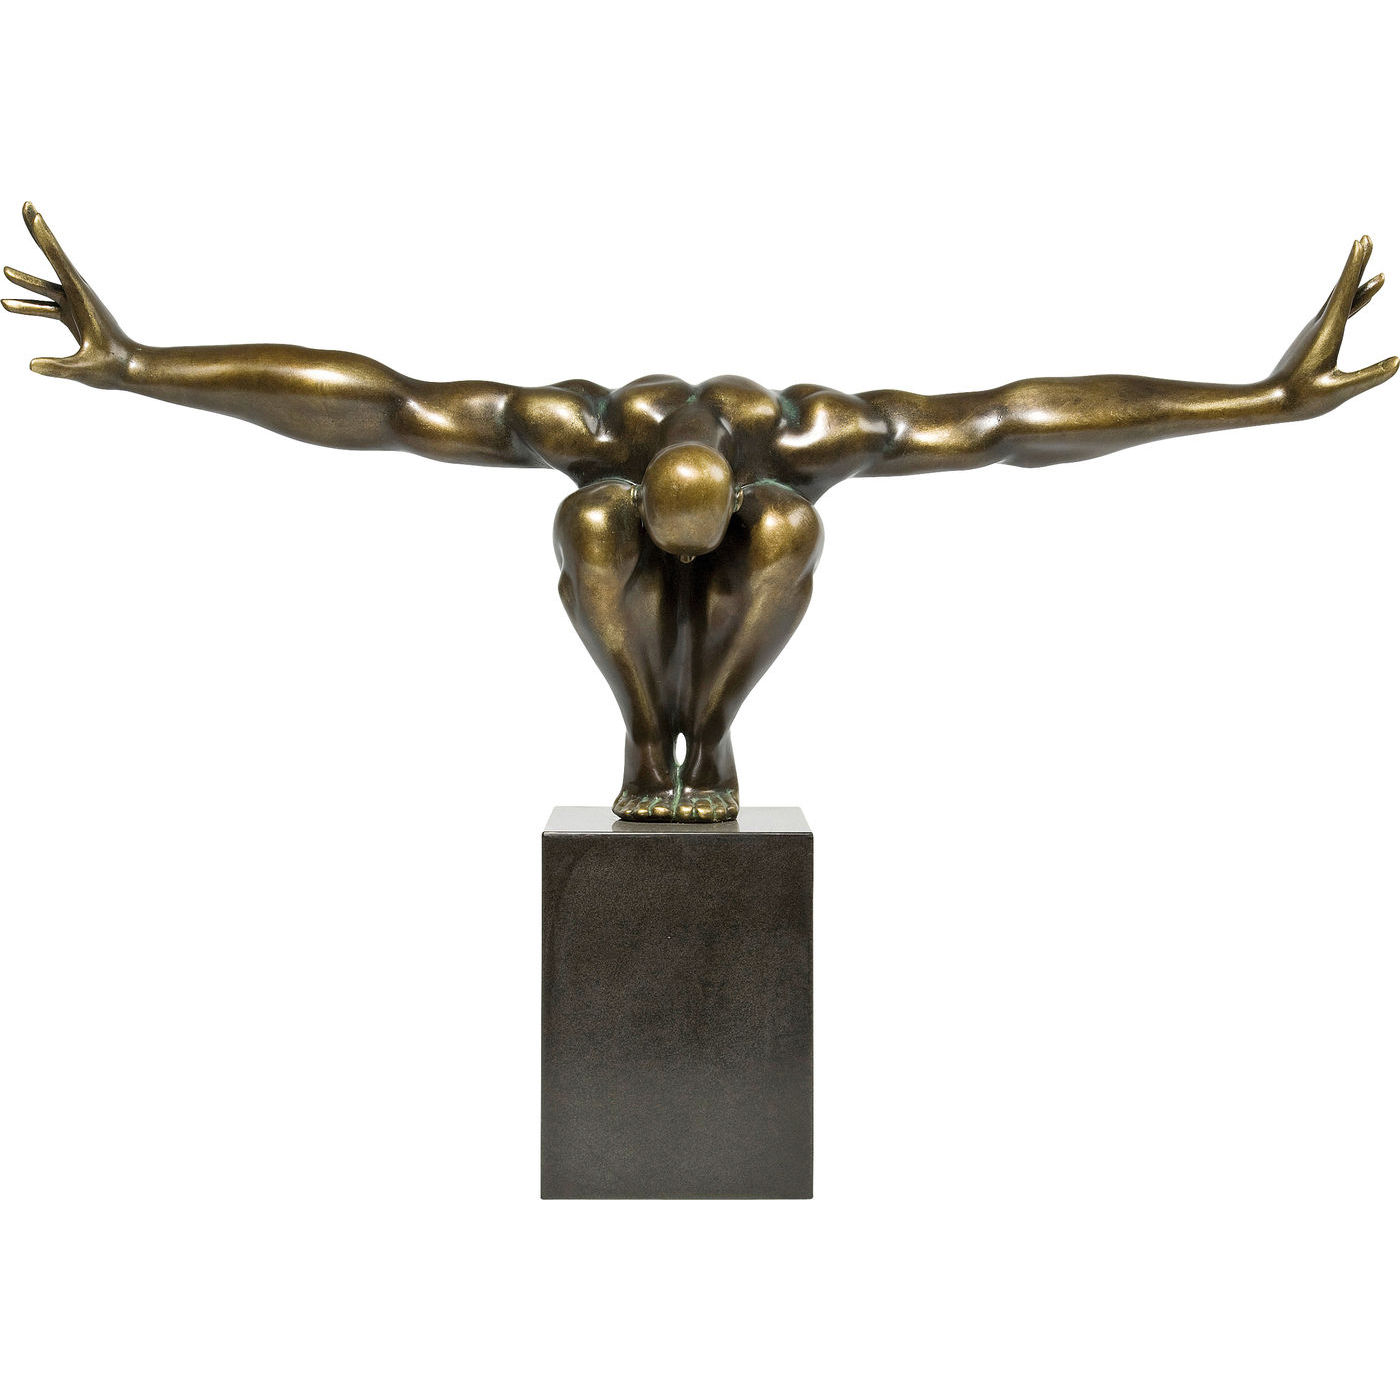 Image of   Kare Design Skulptur, Athlet Bronze